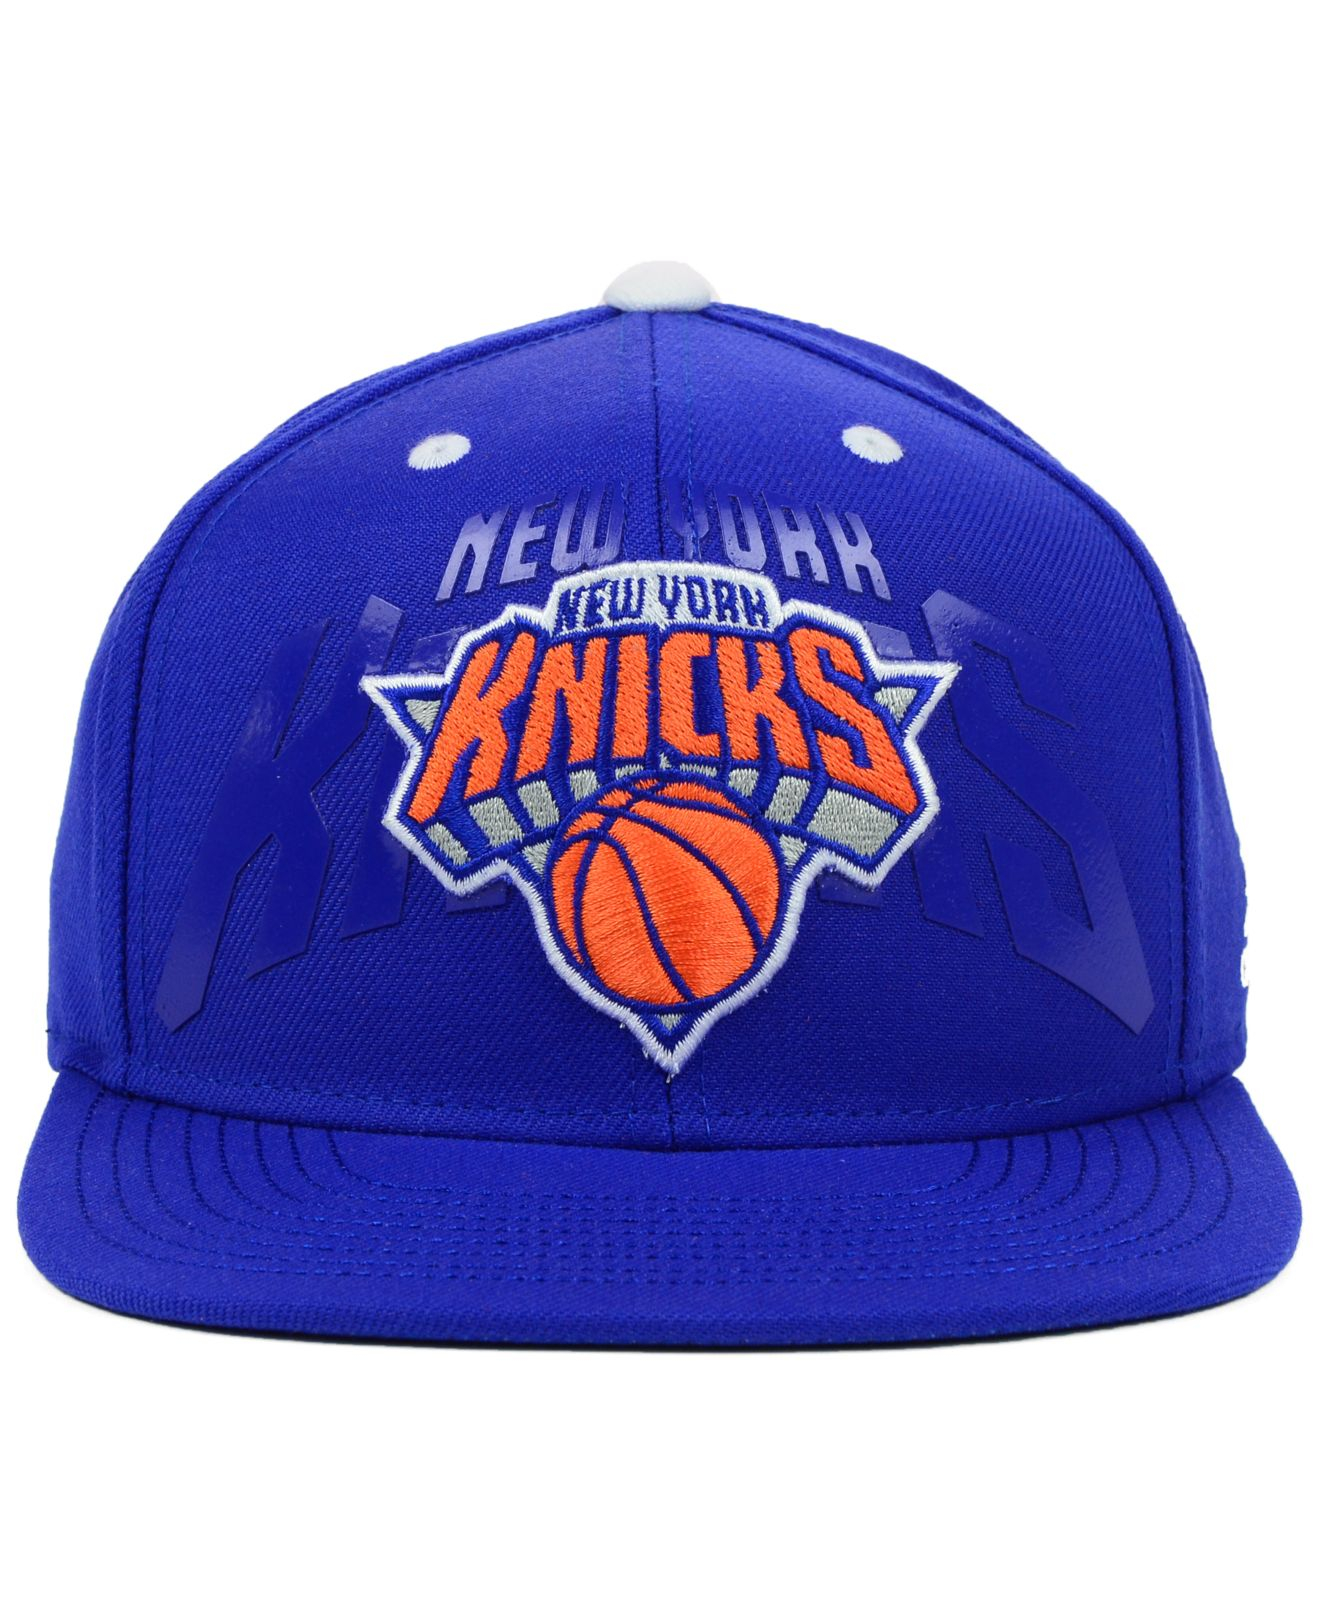 ... lyst adidas new york knicks nba 2014 draft snapback cap in blue for men  cheap for . ... 1722977a4e27